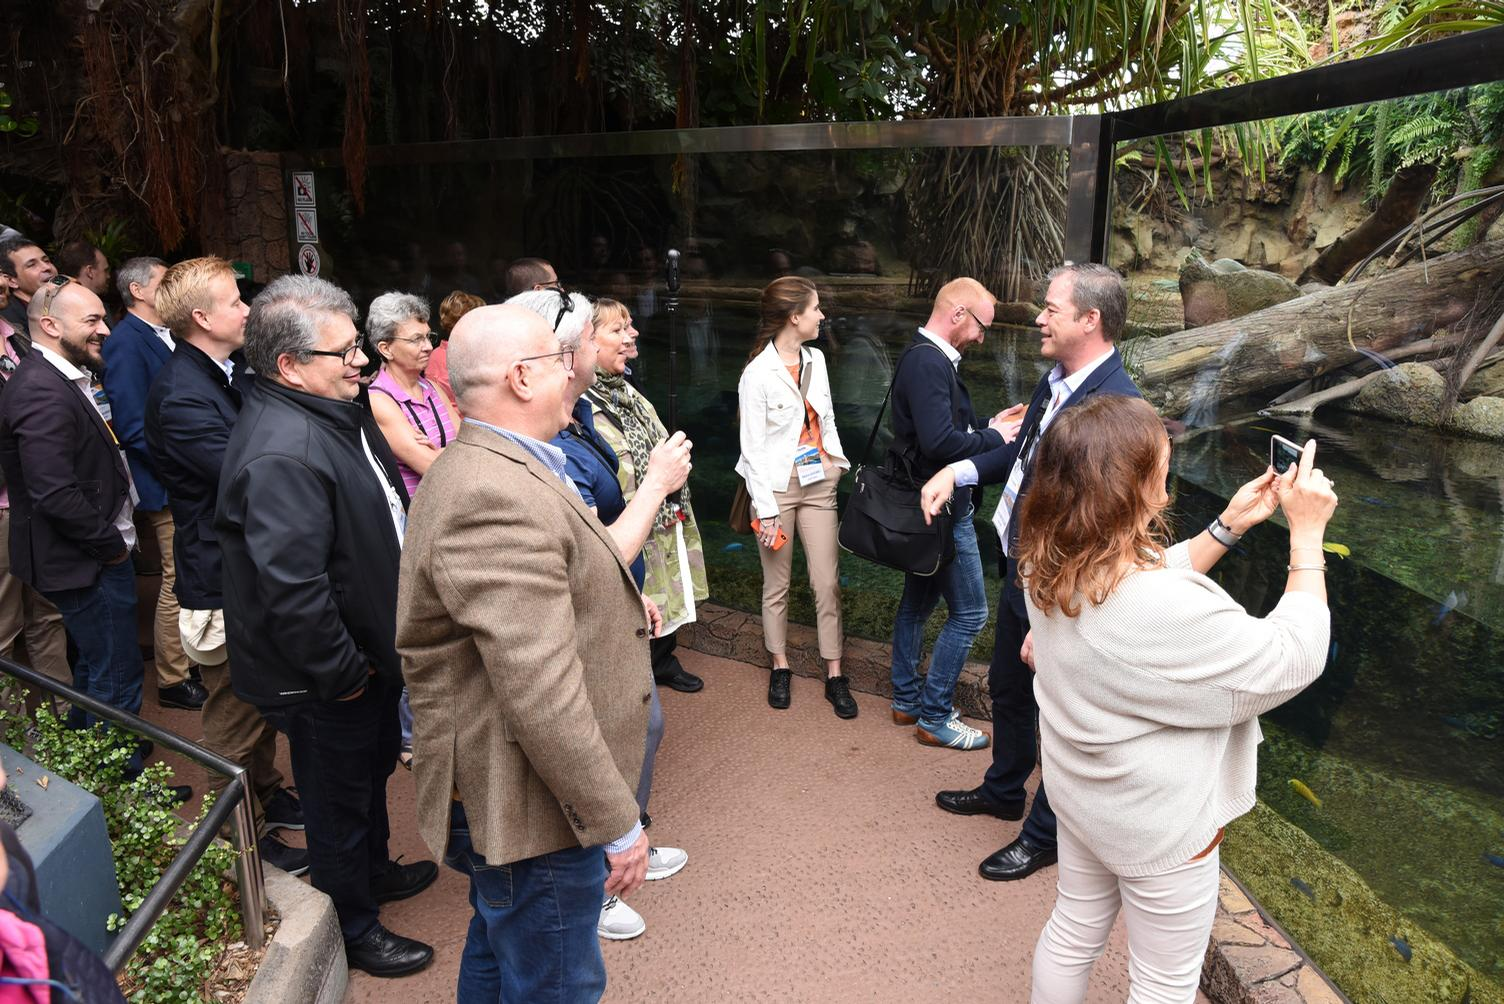 The event included visits to local attractions Loro Parque, Siam Park and Poema Del Mar / IAAPA